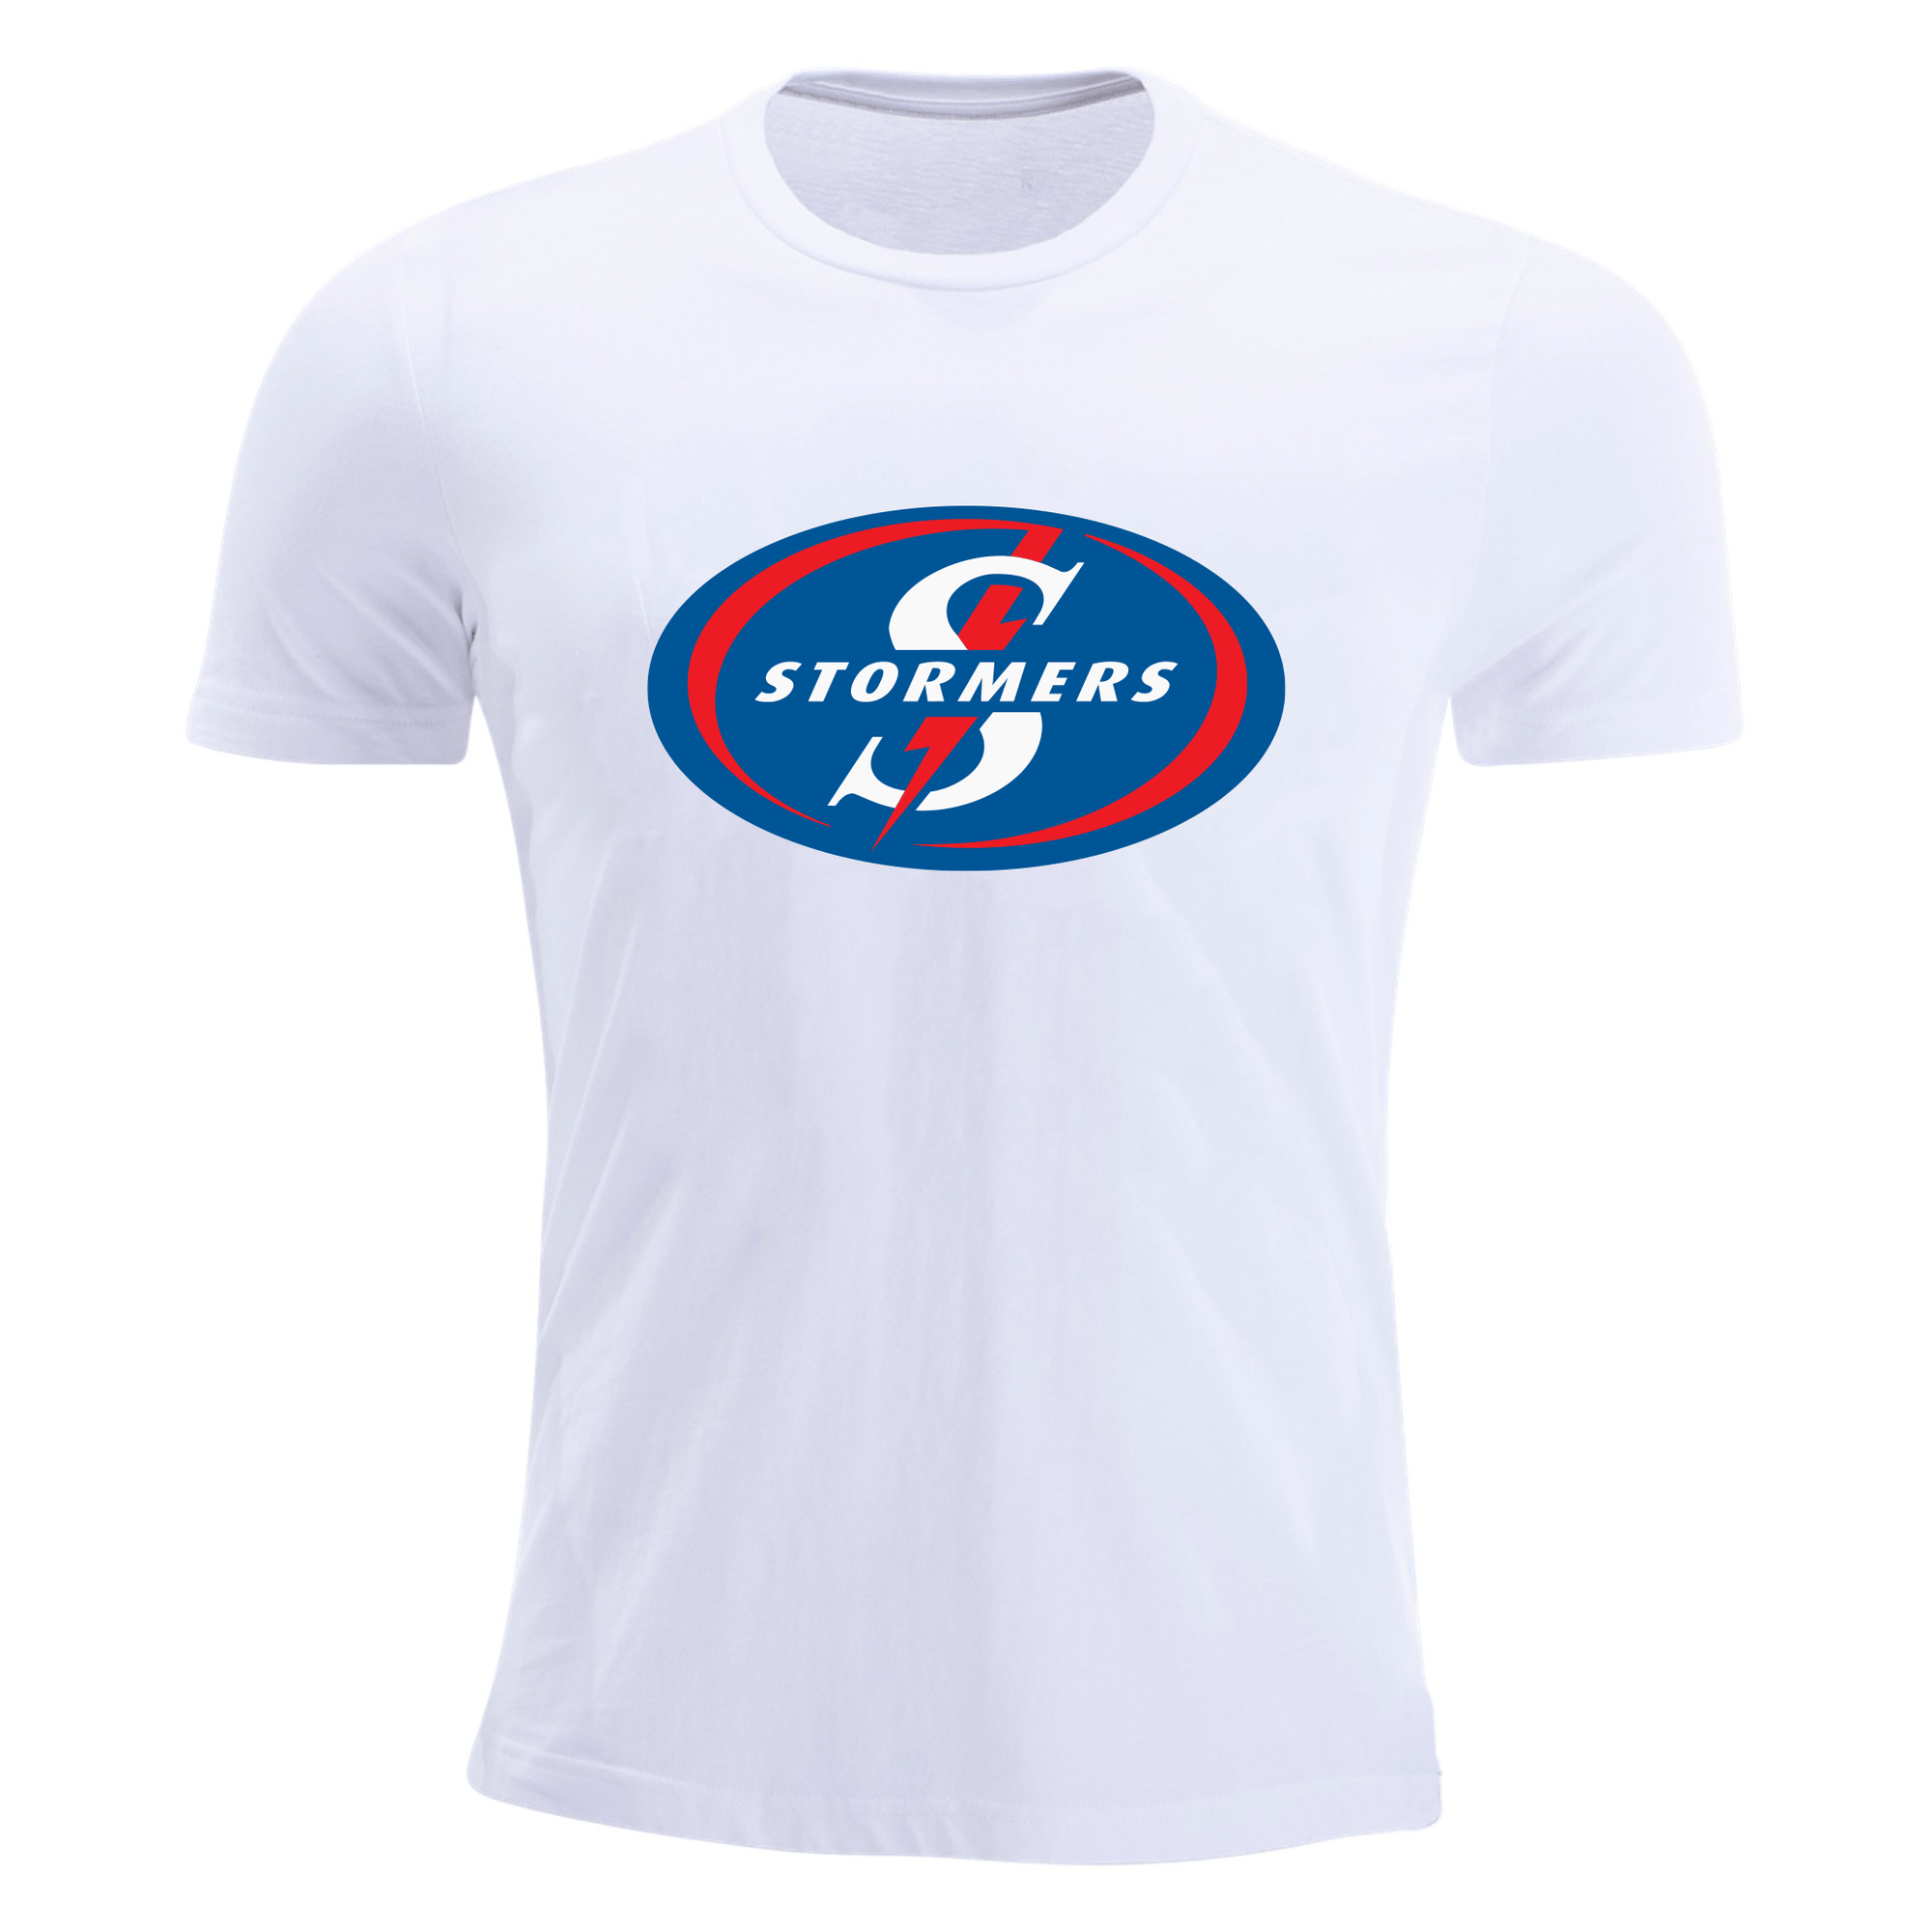 Stormers Short-Sleeve T-Shirt White